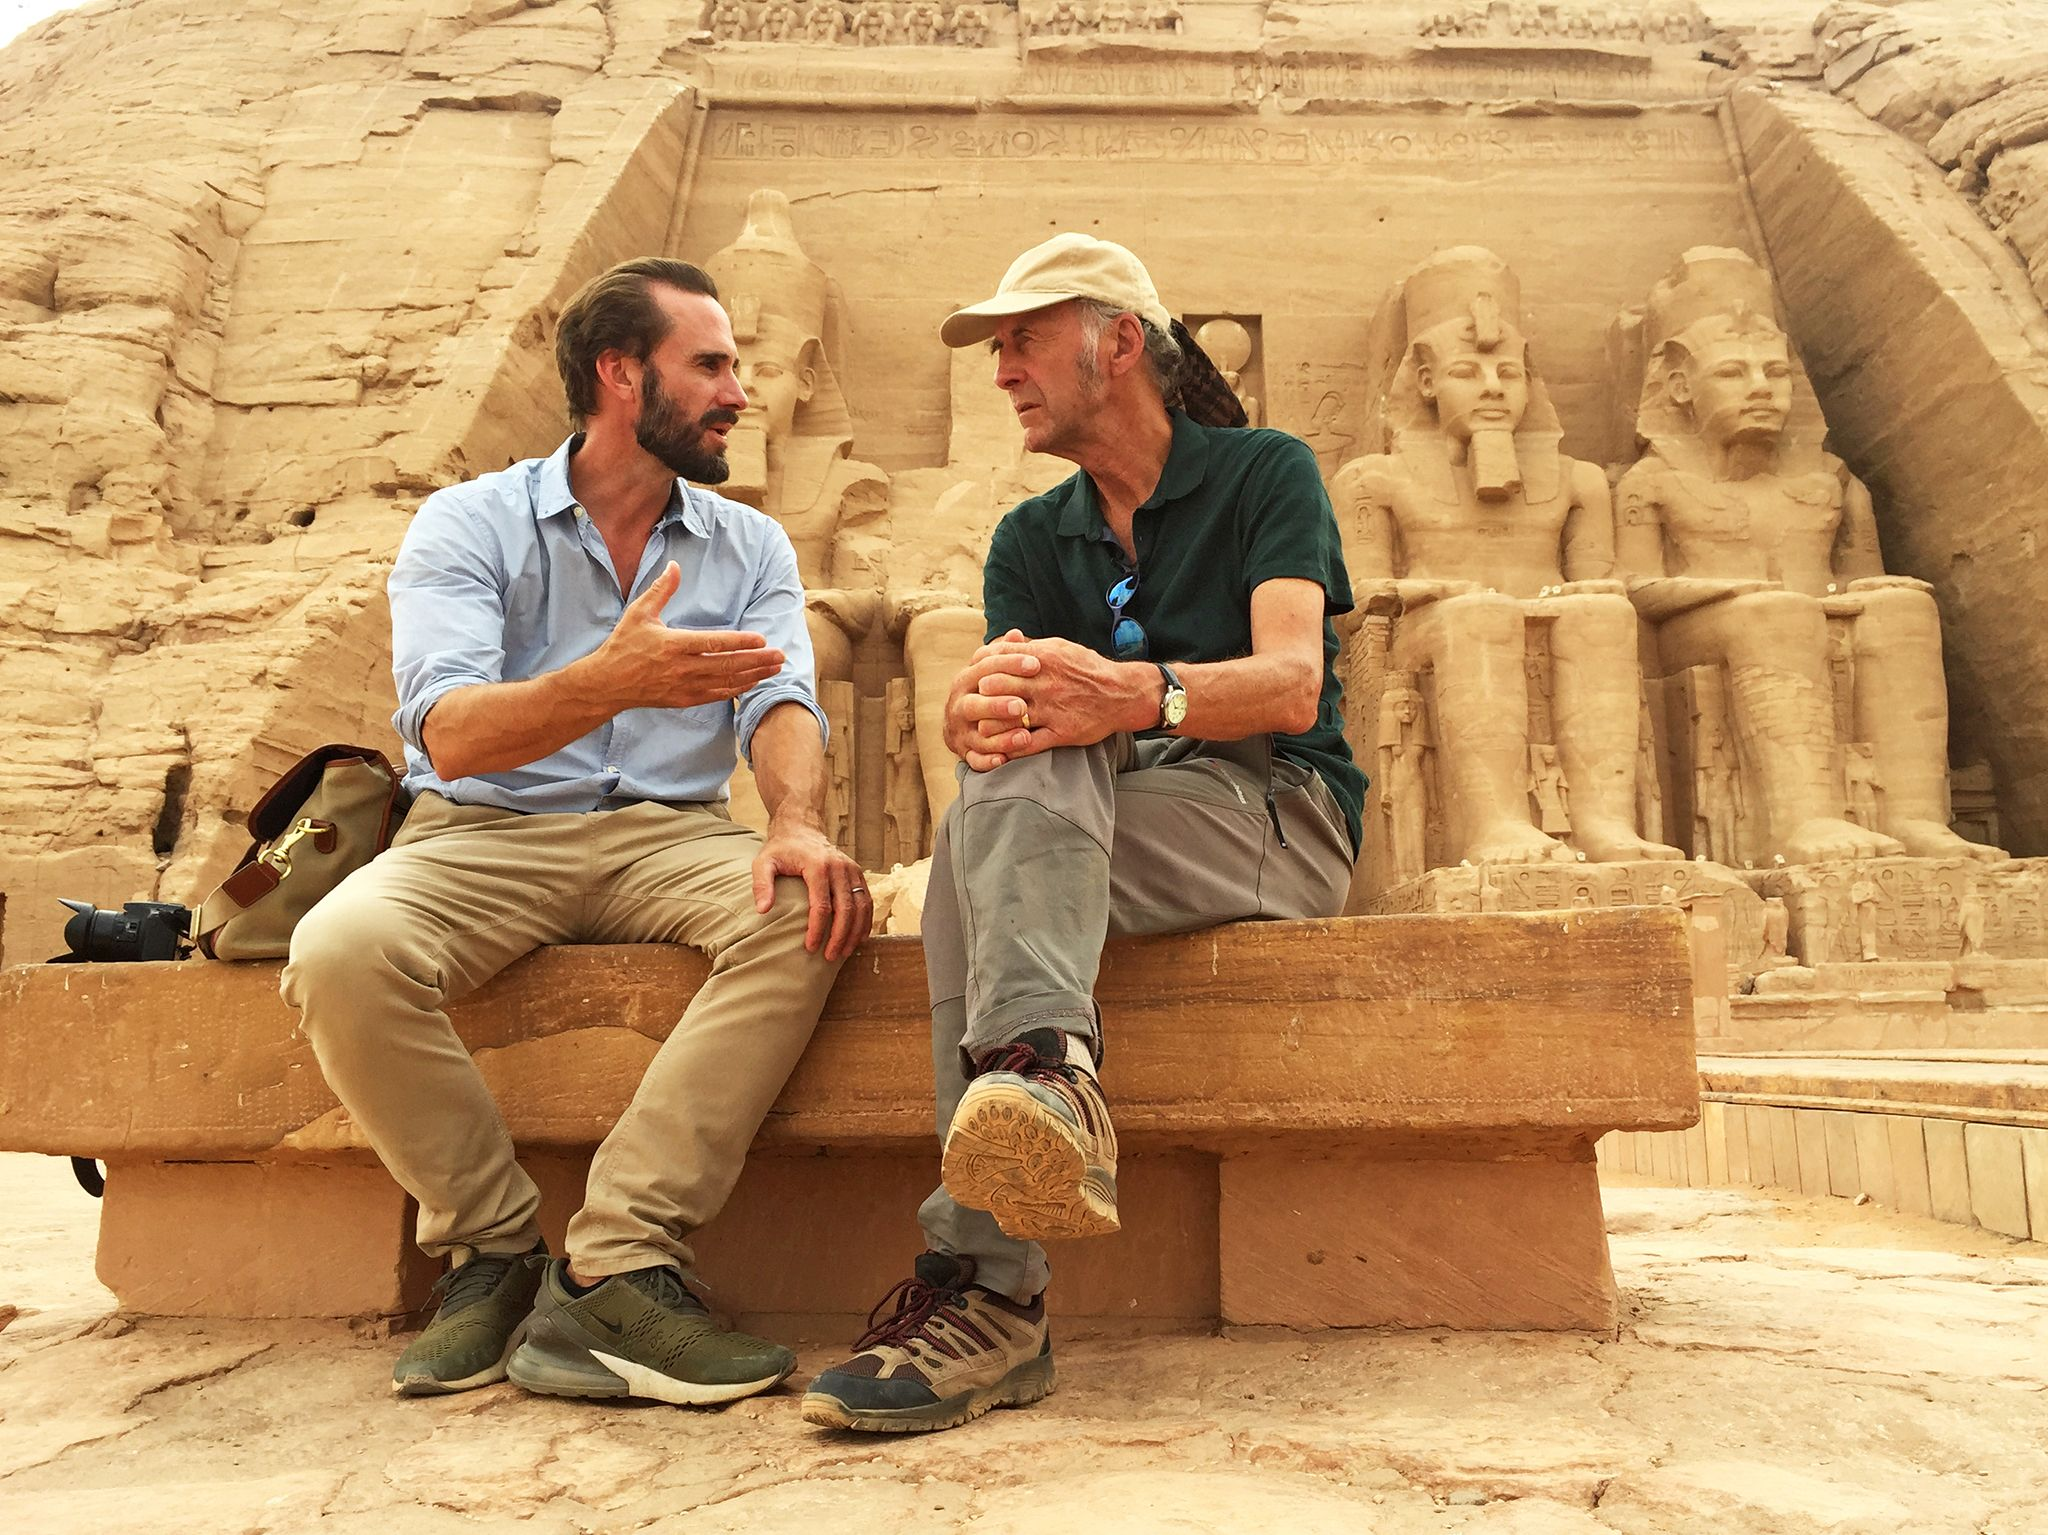 Aswan, Egypt: Joe and Ran reflect on their adventure at it's spectacular final location: the... [Foto del giorno - aprile 2019]